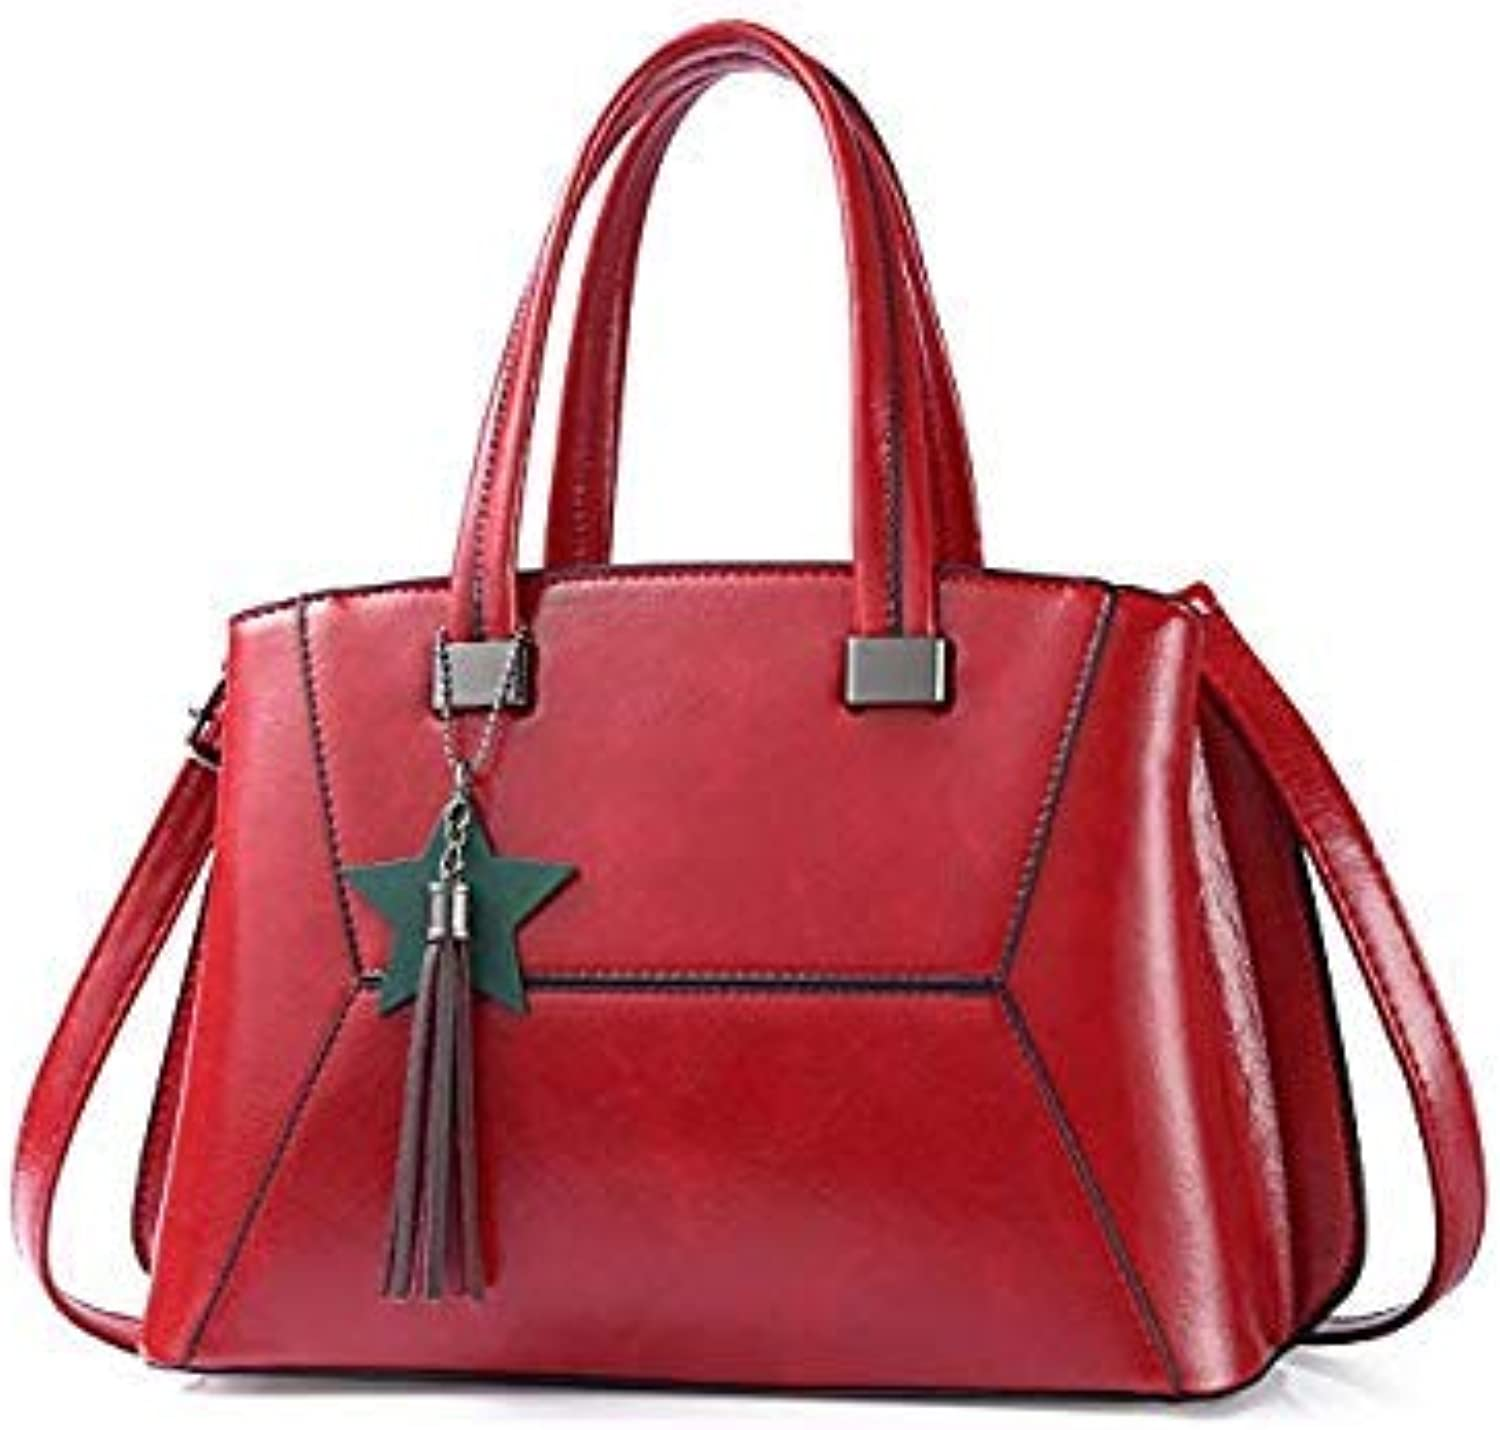 Bloomerang MIWIND Brand Handbags Women Leather Bag Woman Large Shoulder Bags Black Casual Tote Bag bolsos women TTY1286 color Red